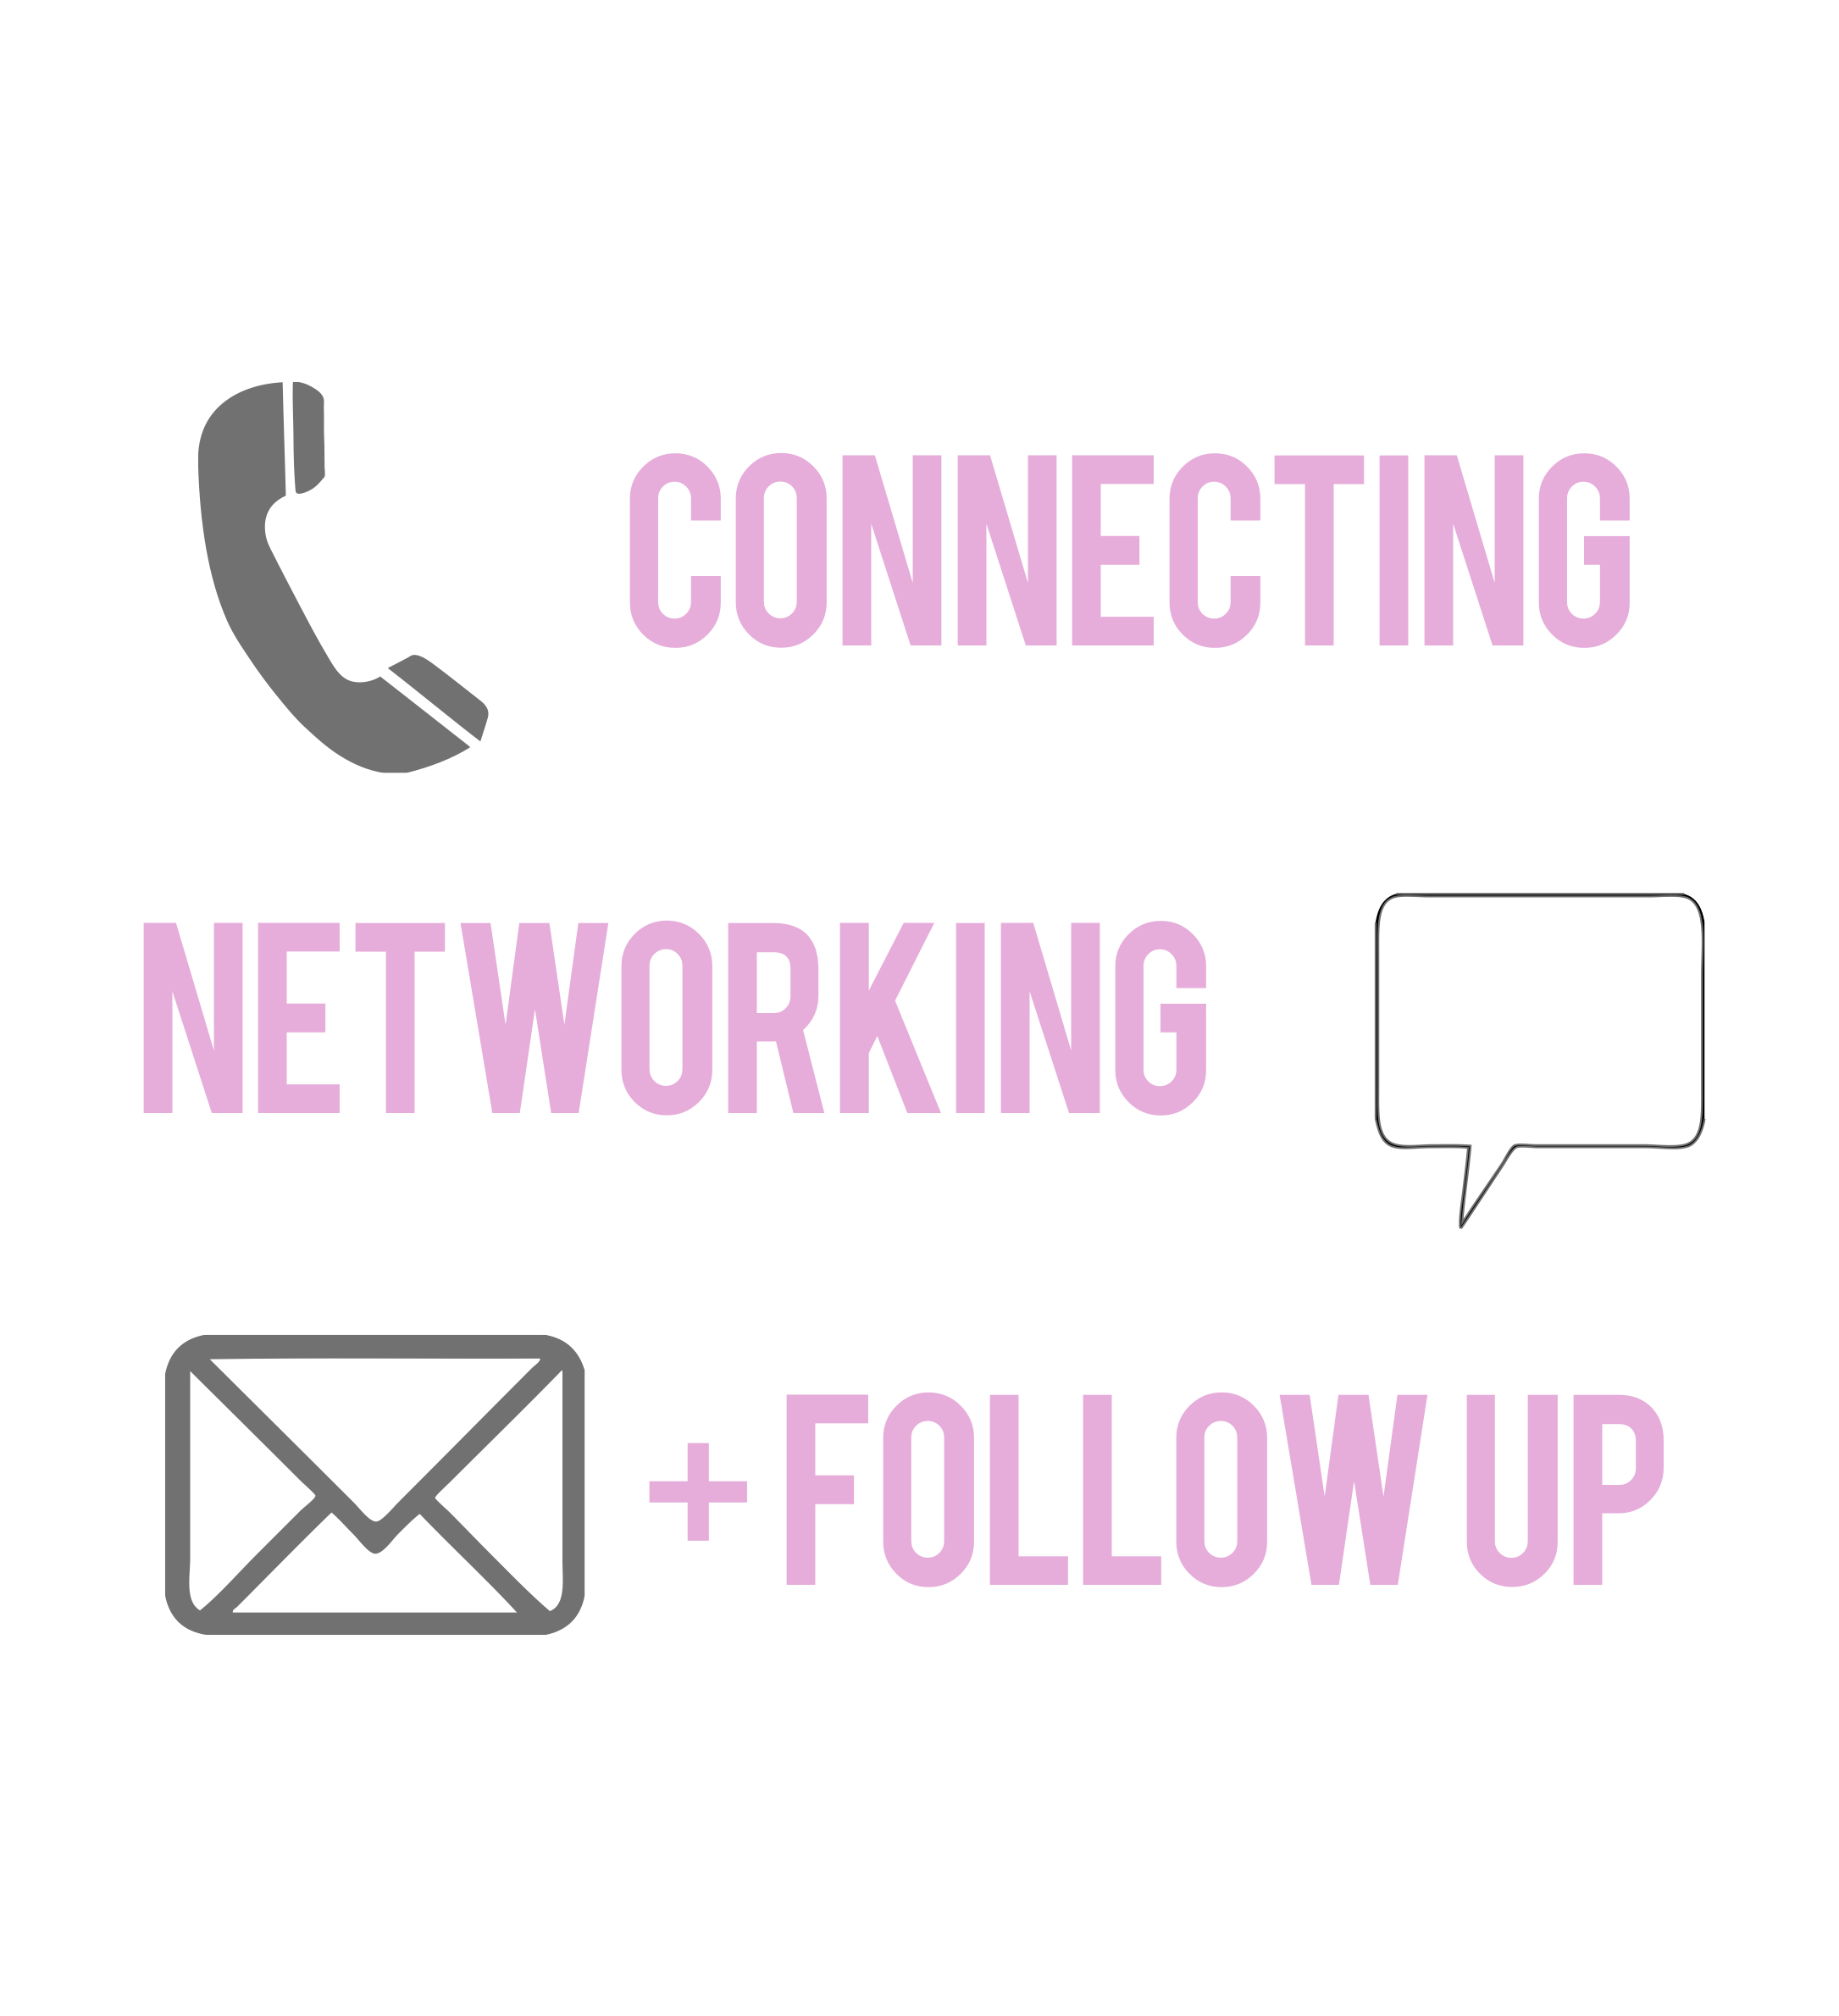 Connecting Networking Follow Up